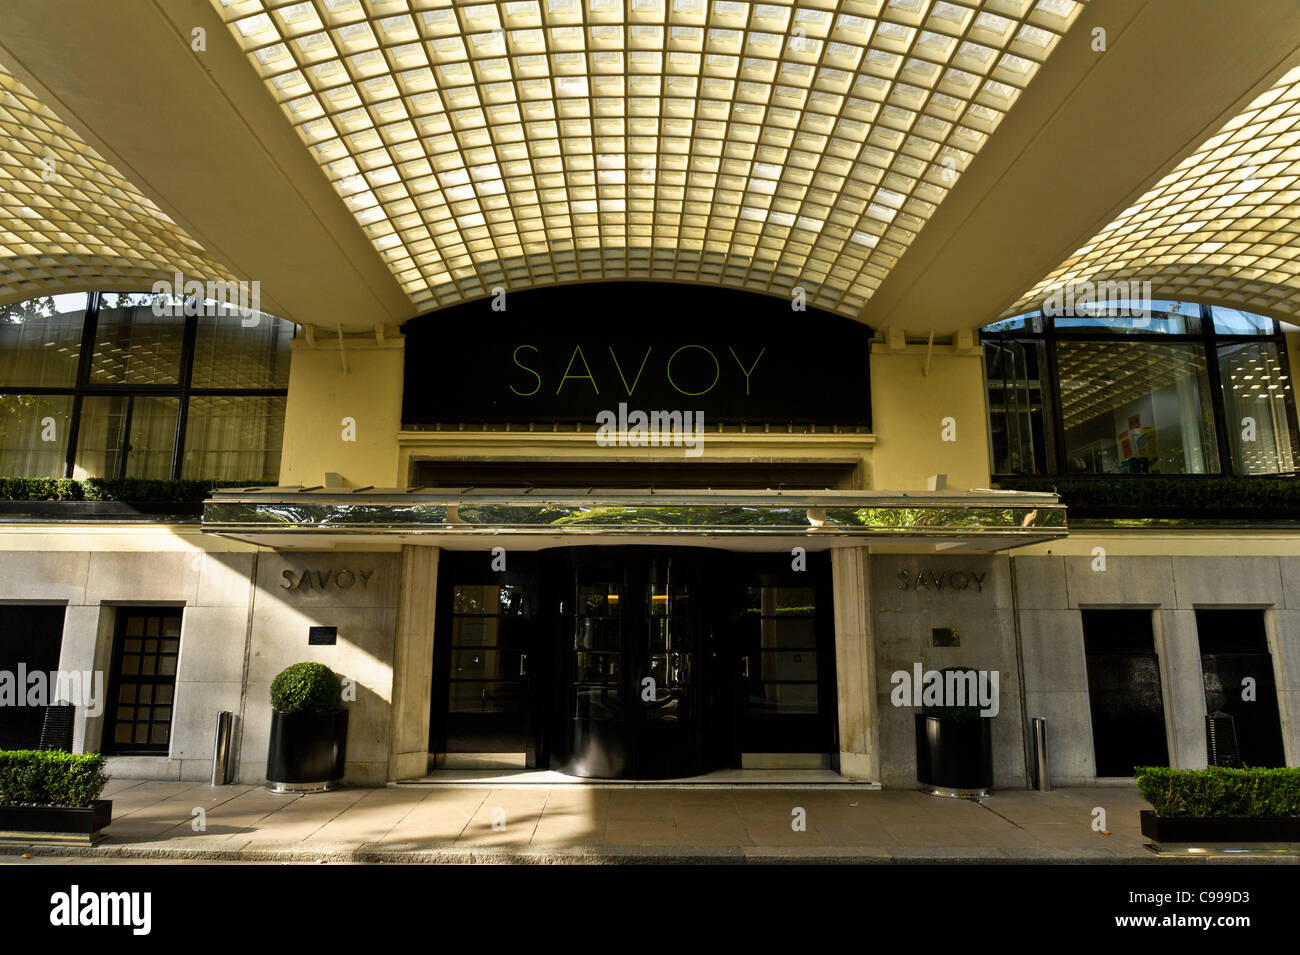 The entrance to the refurbished Savoy Hotel in London - Stock Image